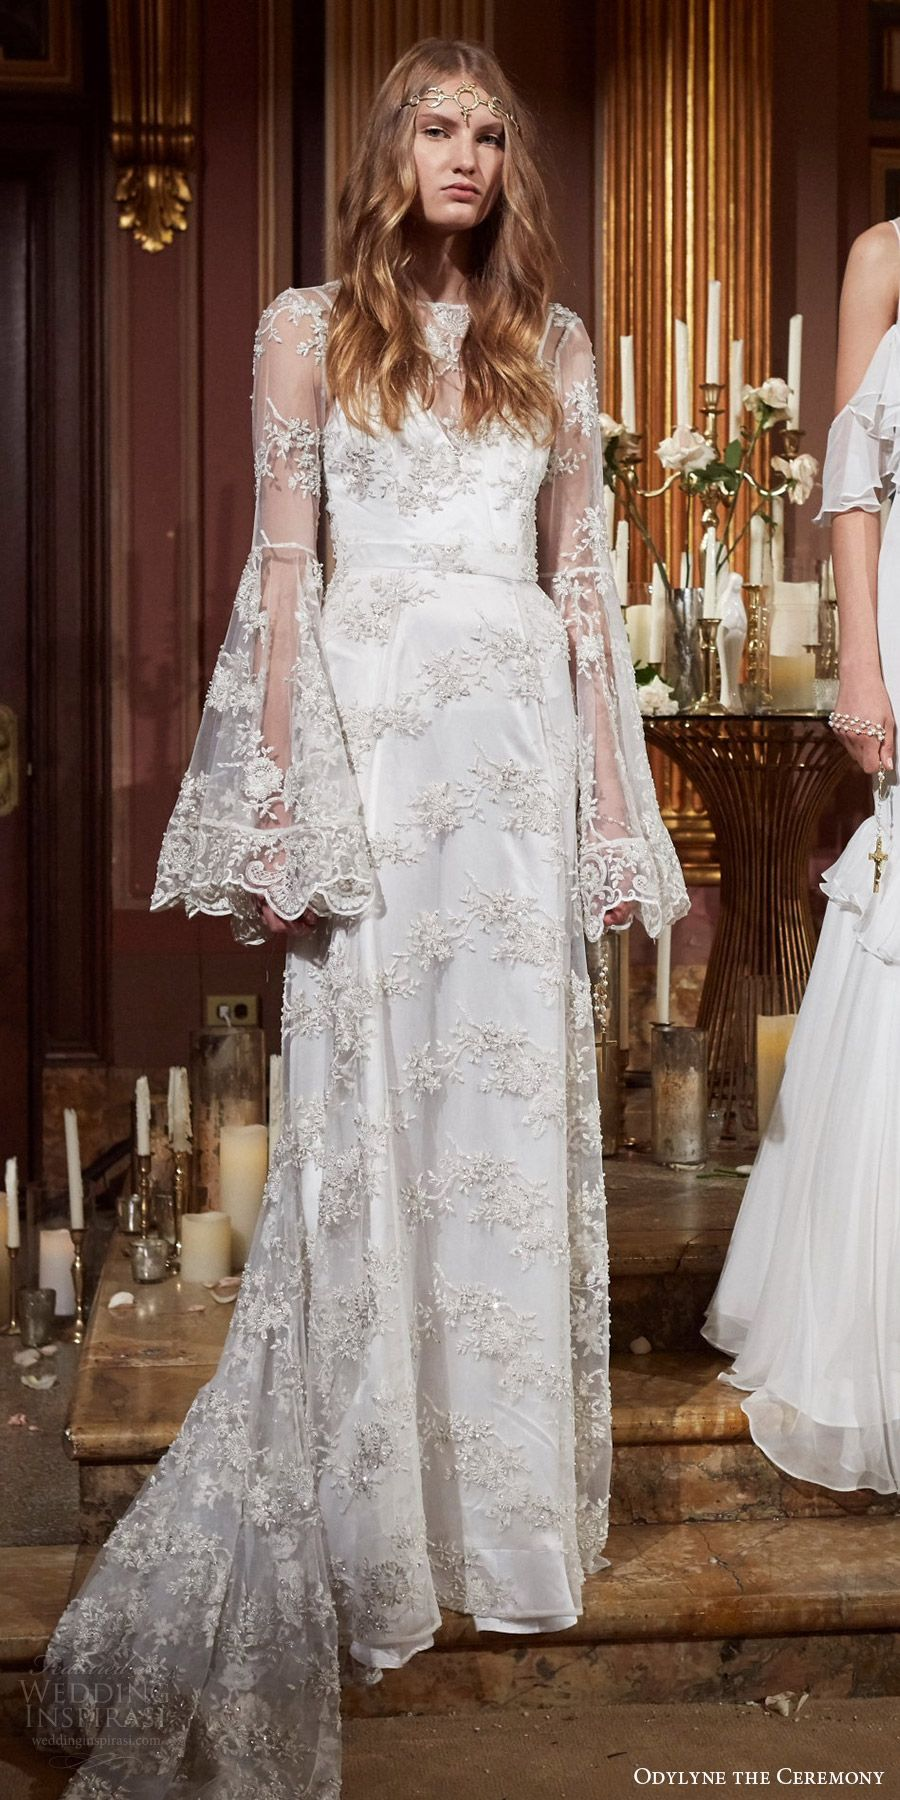 odylyne the ceremony fall 2017 bridal illusion long flare sleeves illusion jewel neck sweetheart lace a line wedding dress (look 14) mv train